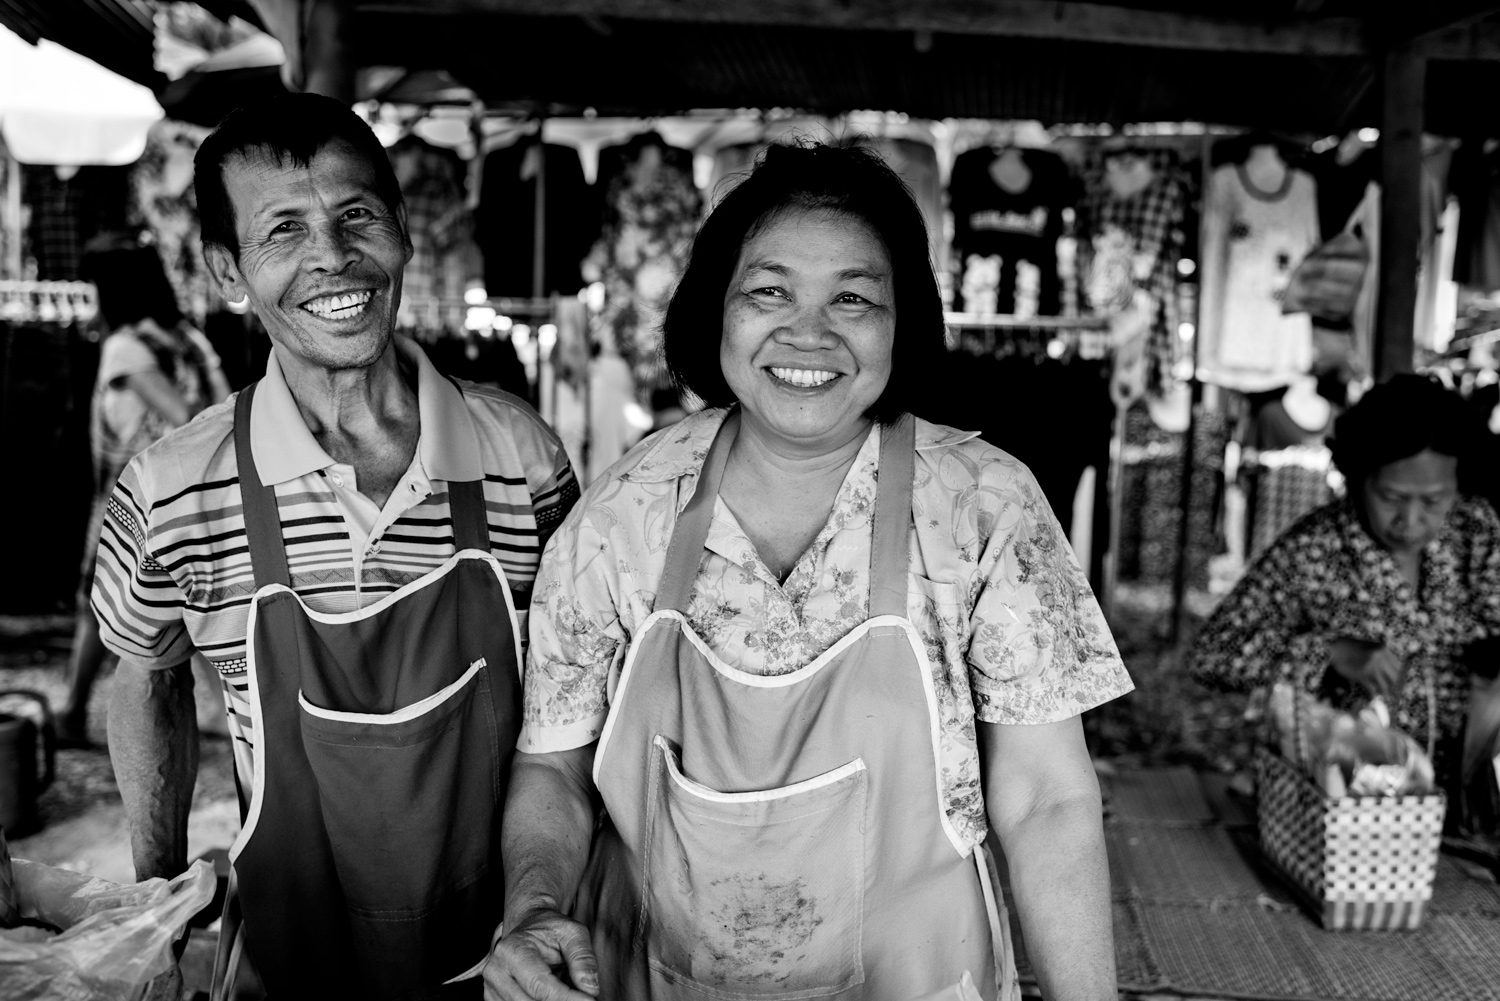 Learn How To Easily Improve Your Street Photography Portraits Vendors Enjoying Their Portrait Being Made © Kevin Landwer-Johan